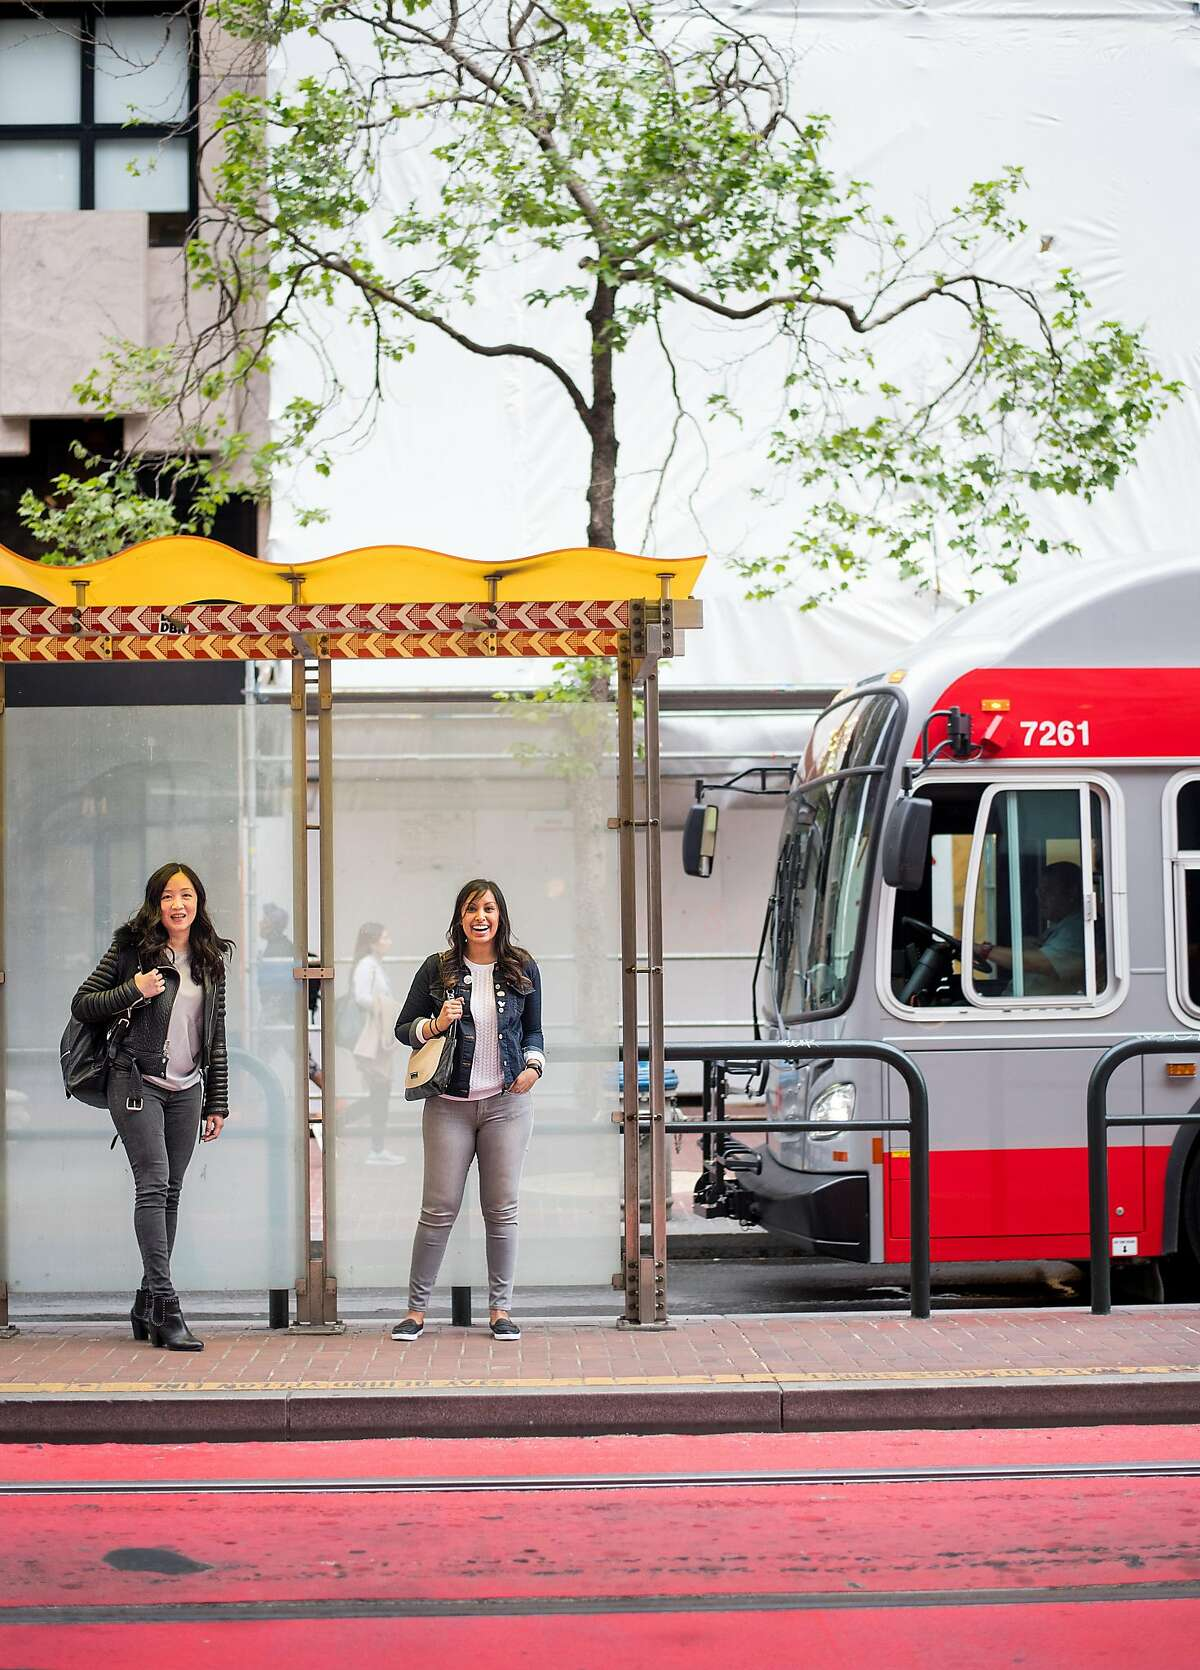 Muni Diaries co-founders Eugenia Chien (left) and Tara Ramroop, shown at a Market Street bus stop, operate a popular website and stage show.